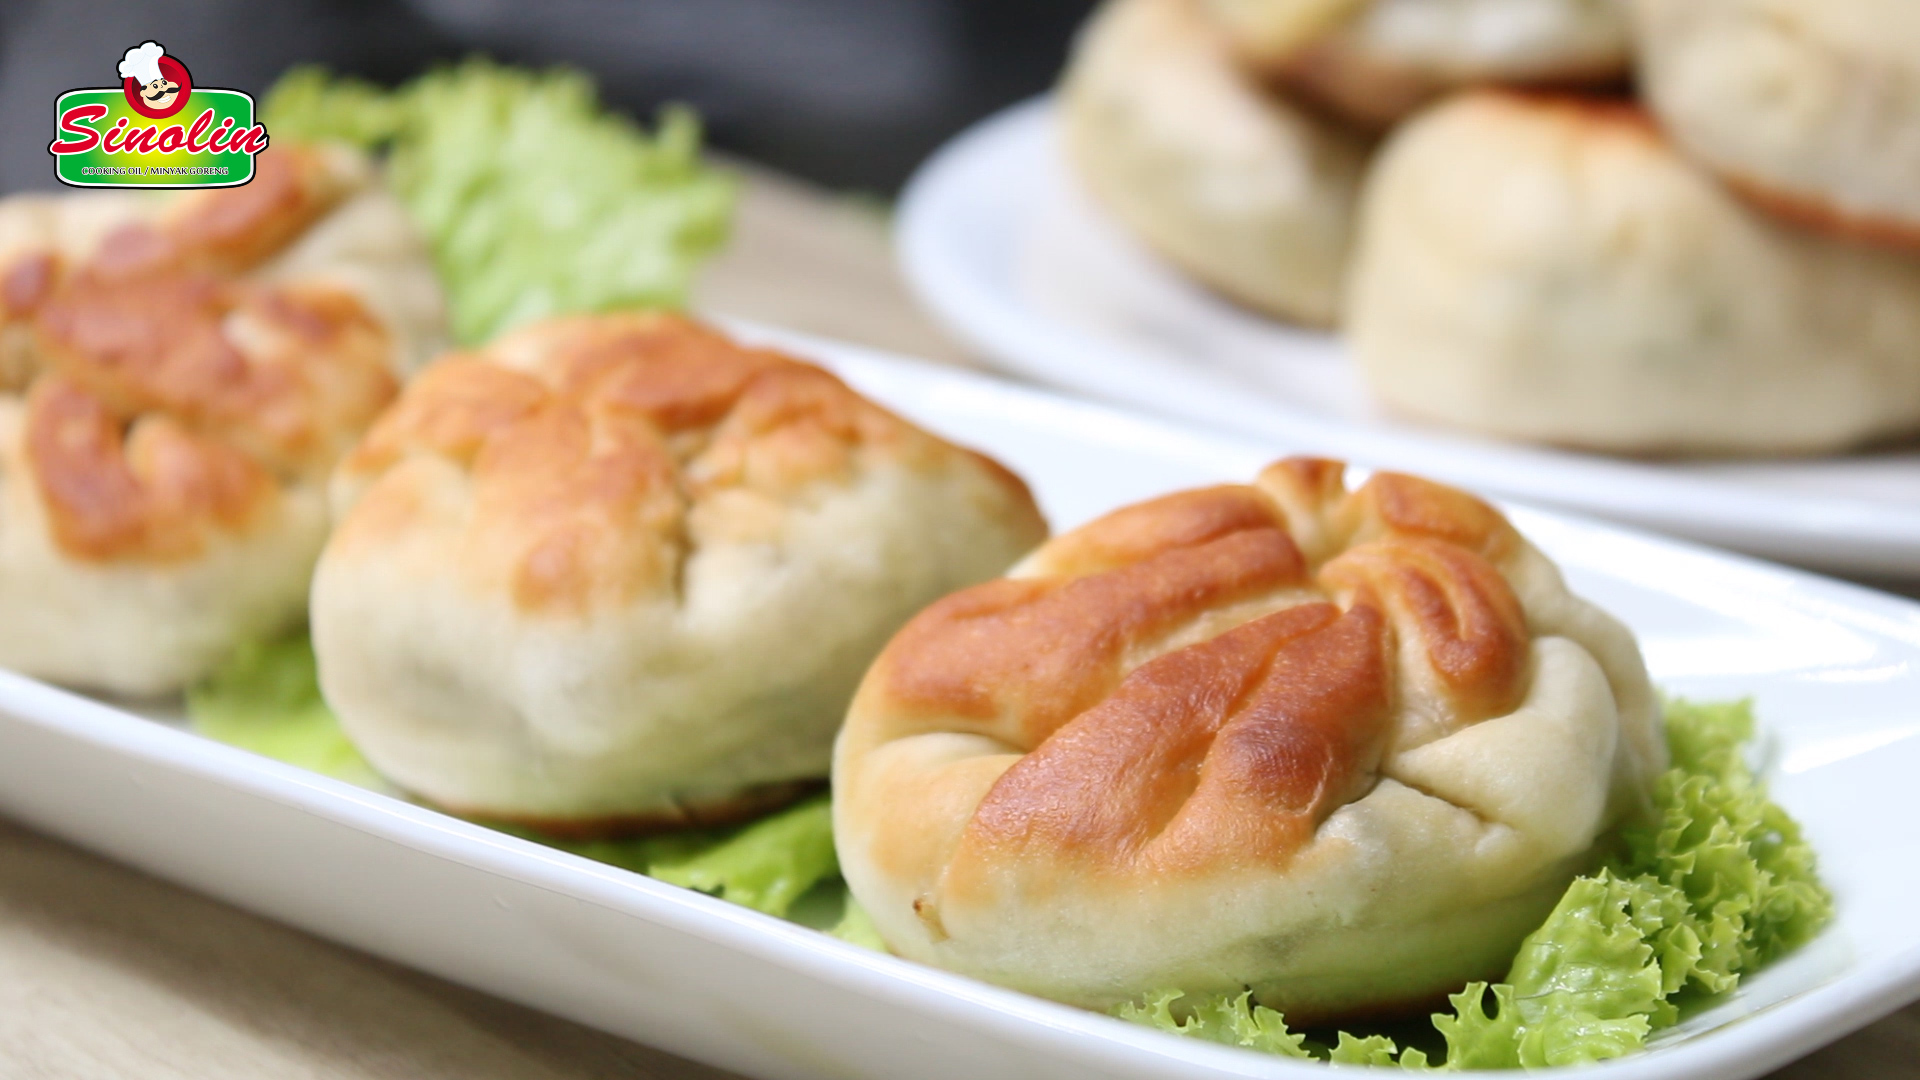 Pan-Fried Vegetable Buns By Dapur Sinolin